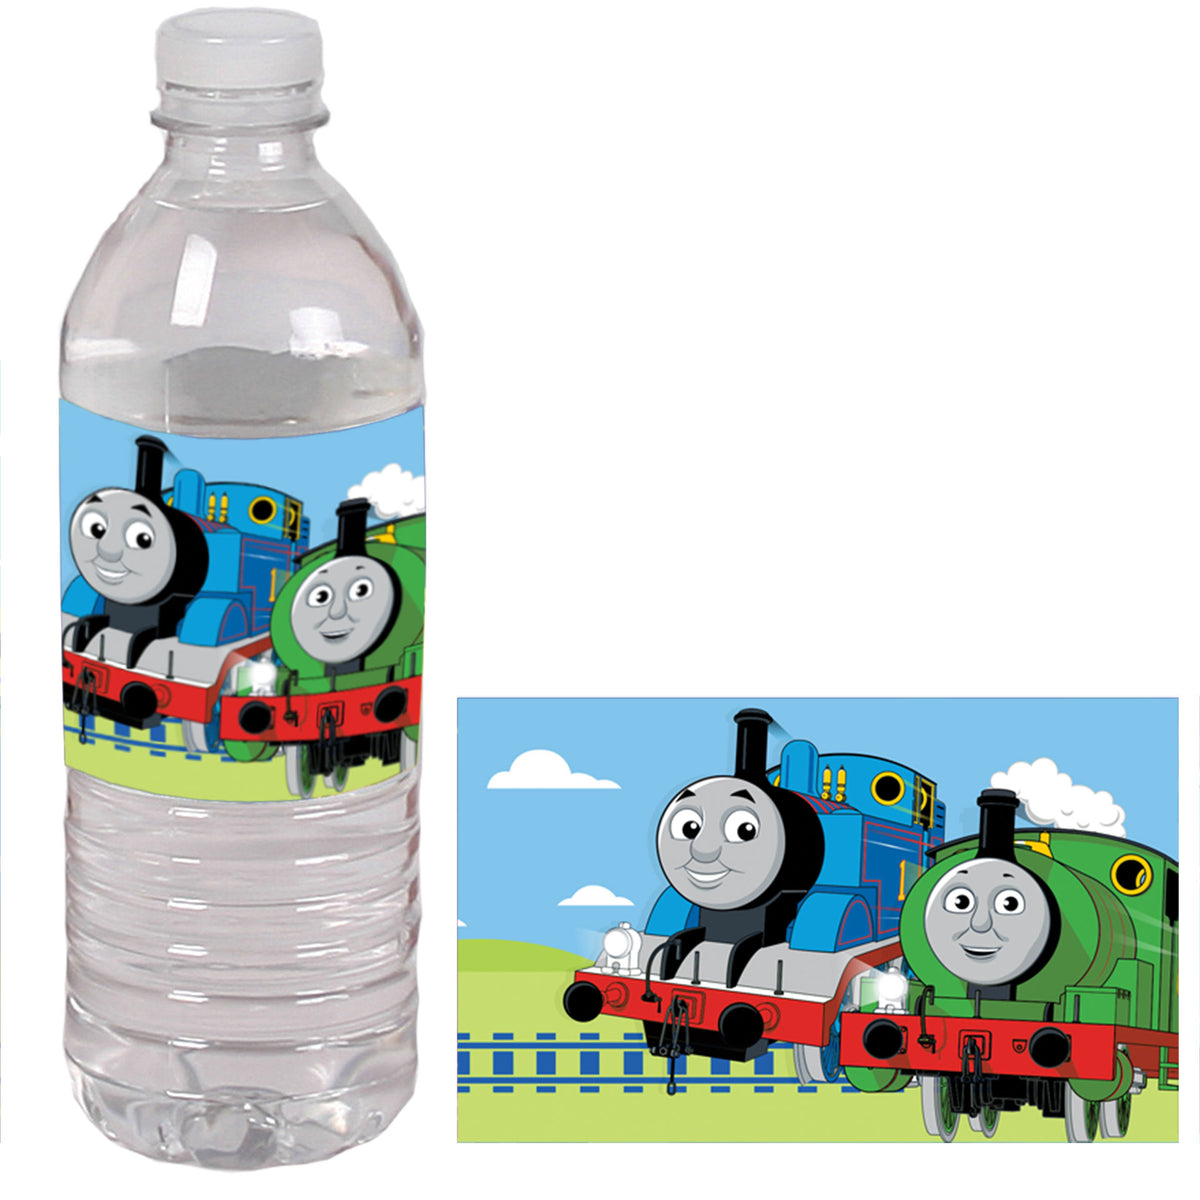 Thomas and Friends Personalized Water Bottle Labels